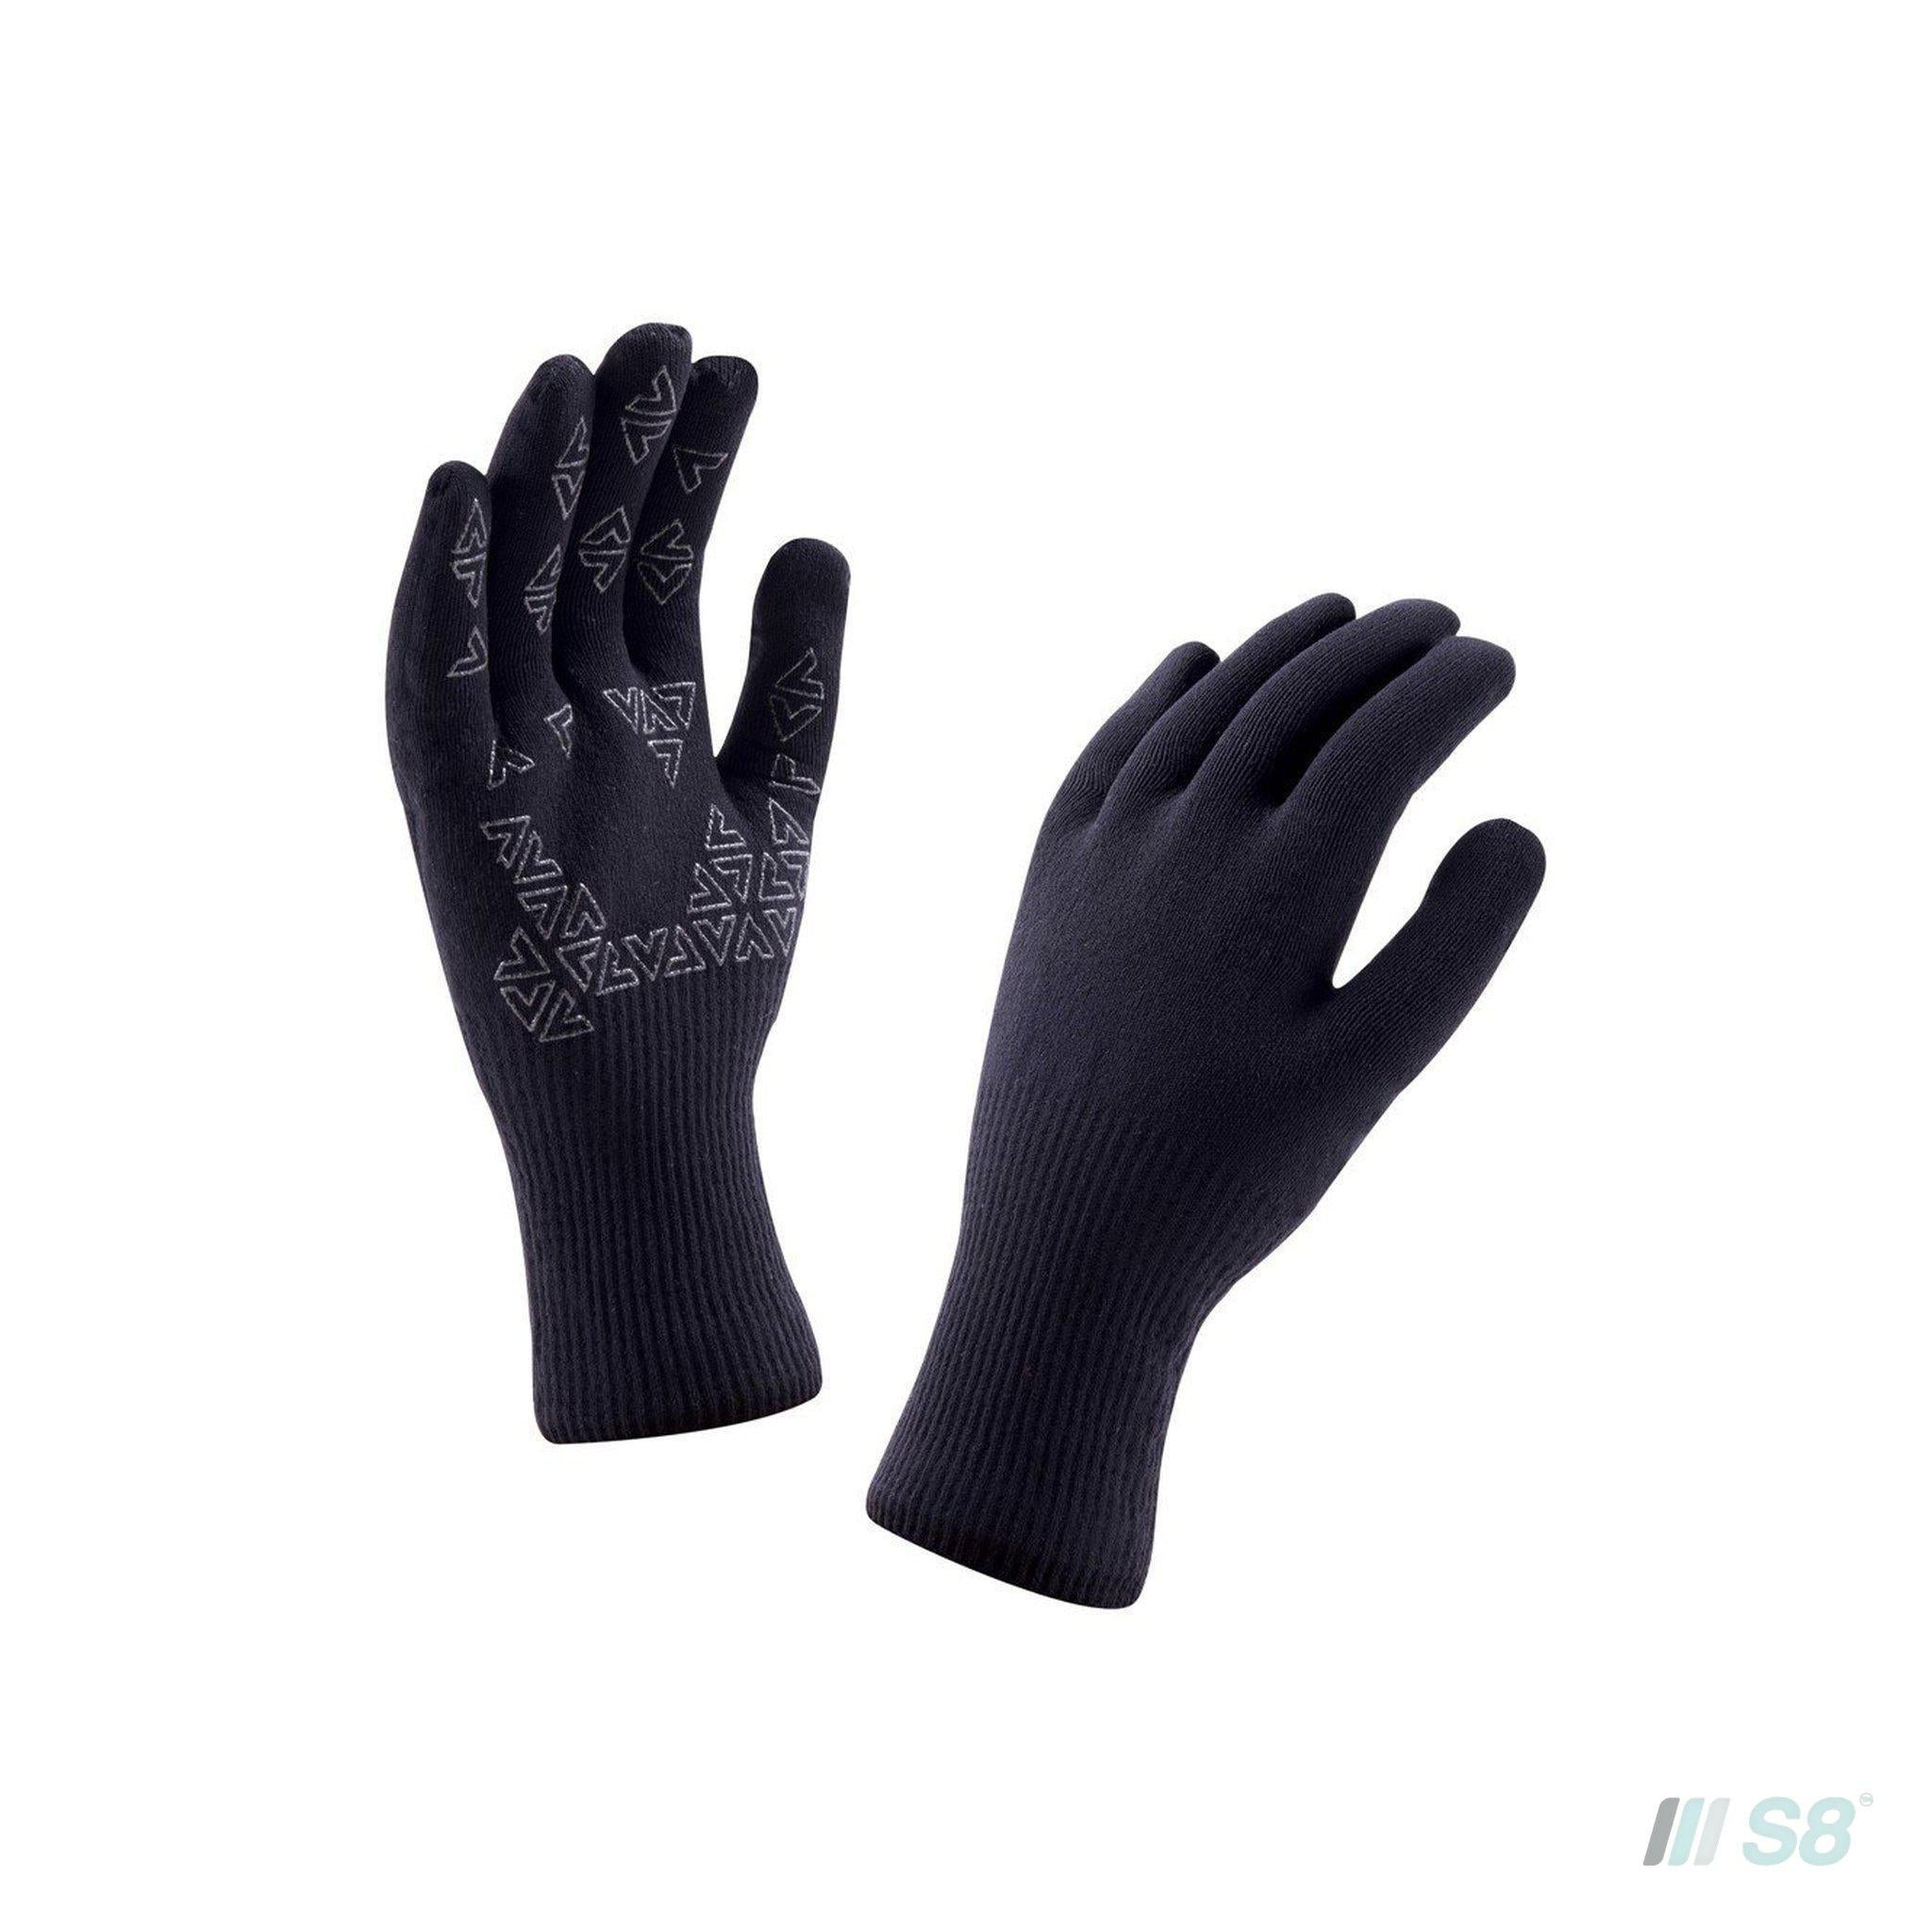 SEALSKINZ ULTRA GRIP GLOVE 2017-SEALSKINZ-S8 Products Group